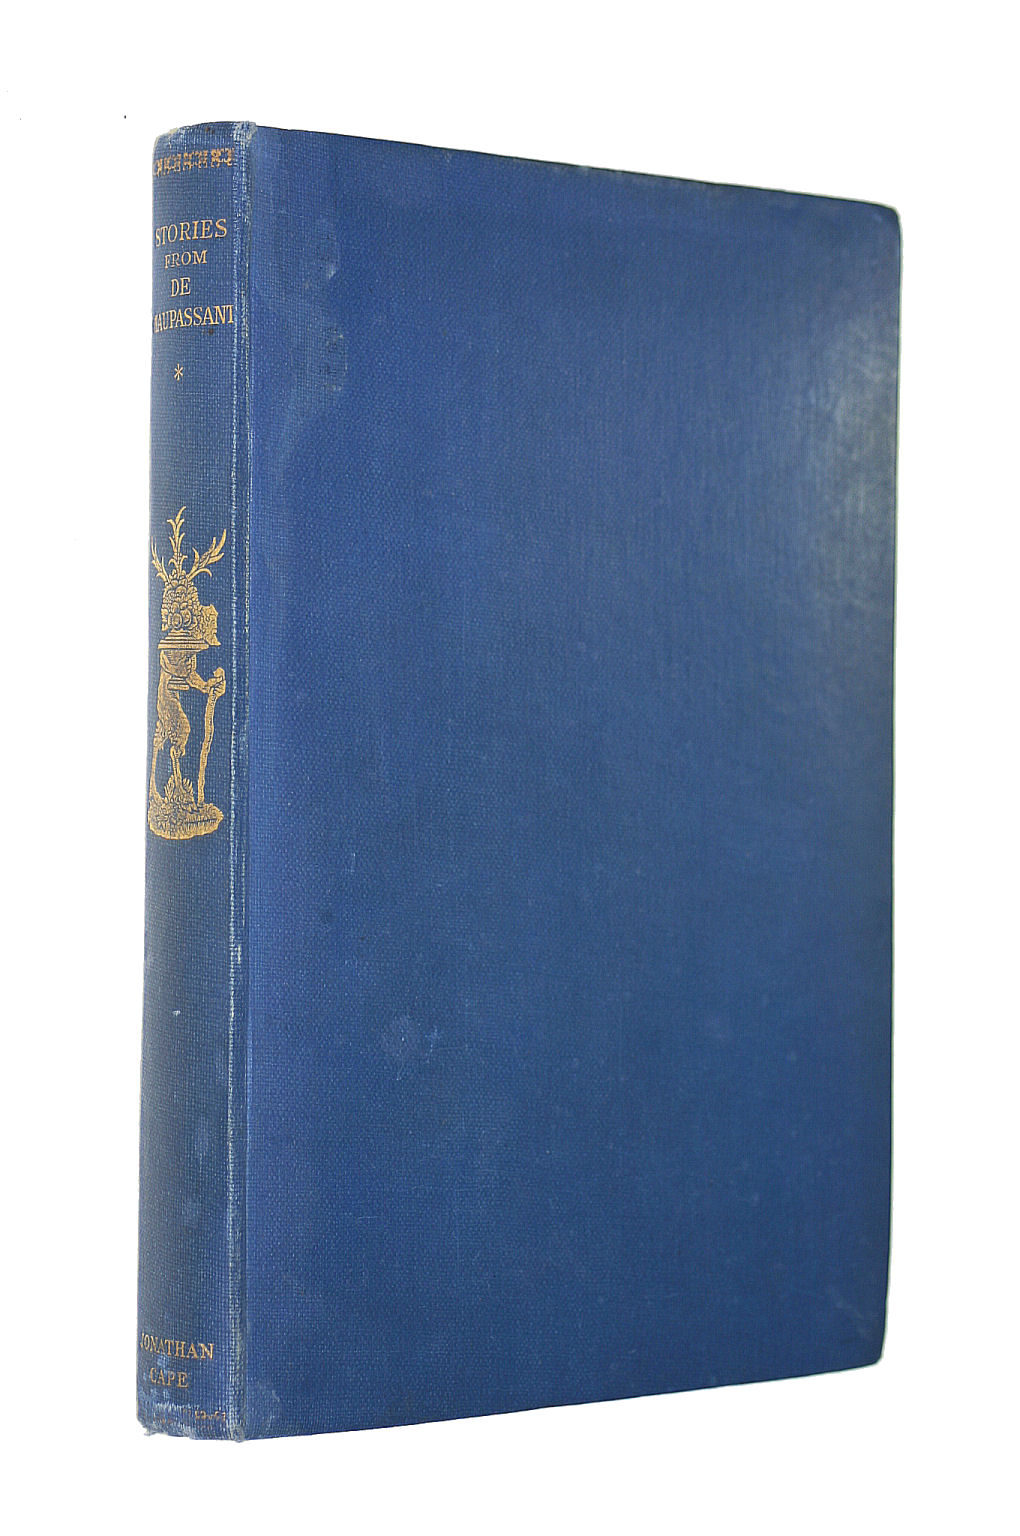 Image for Stories from De Maupassant. Translated by E. M. With a preface by Ford Madox Ford (Travellers' Library.)